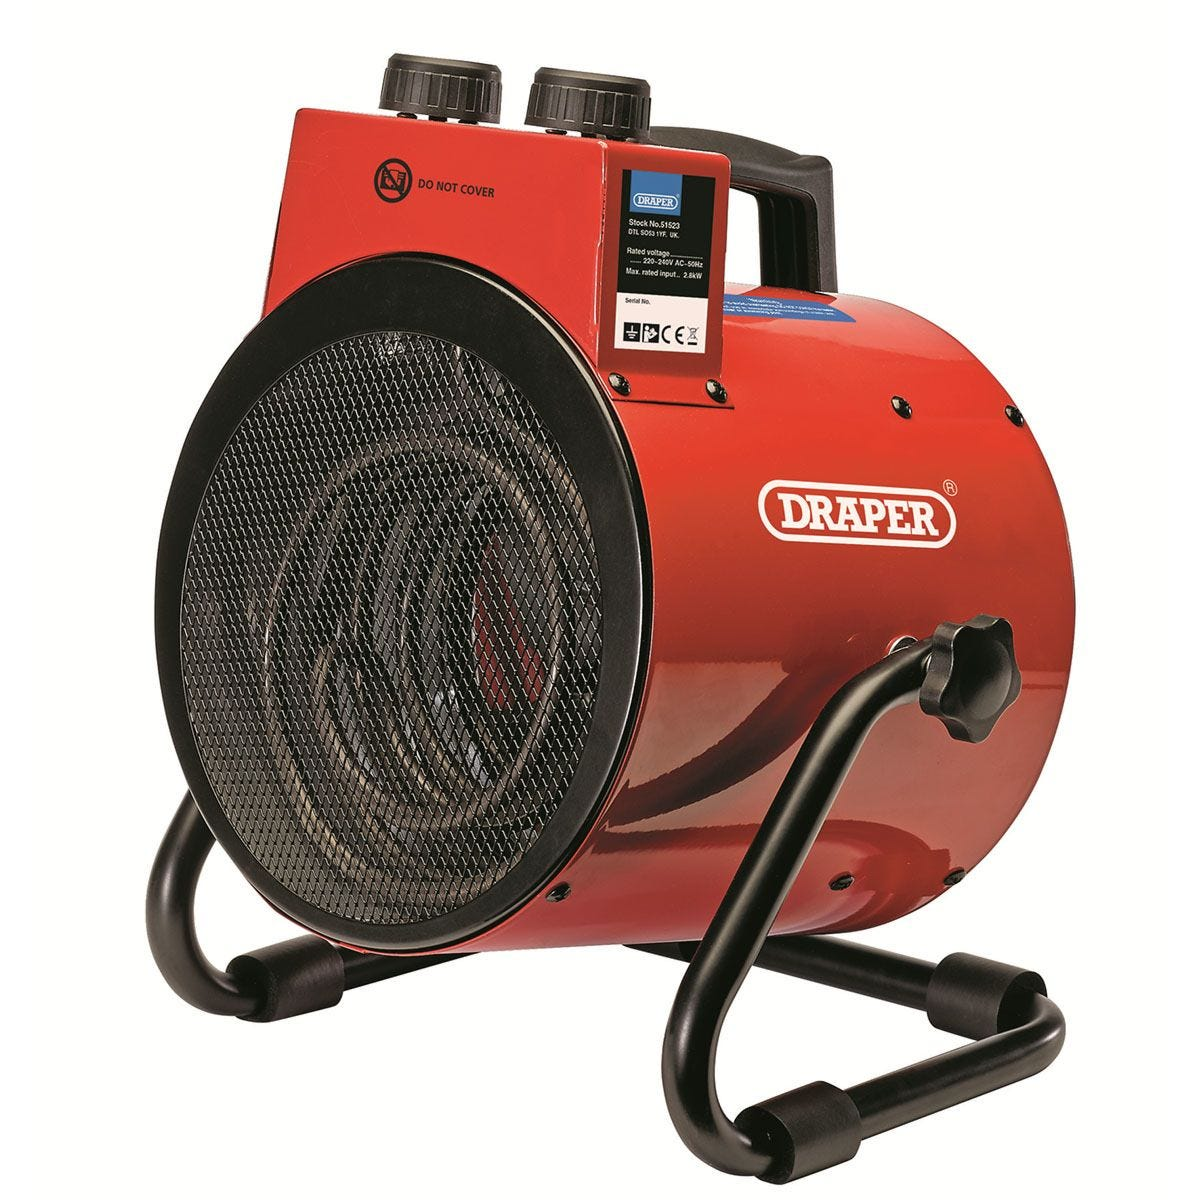 Draper Electric Space Heater 2.8KW - Red